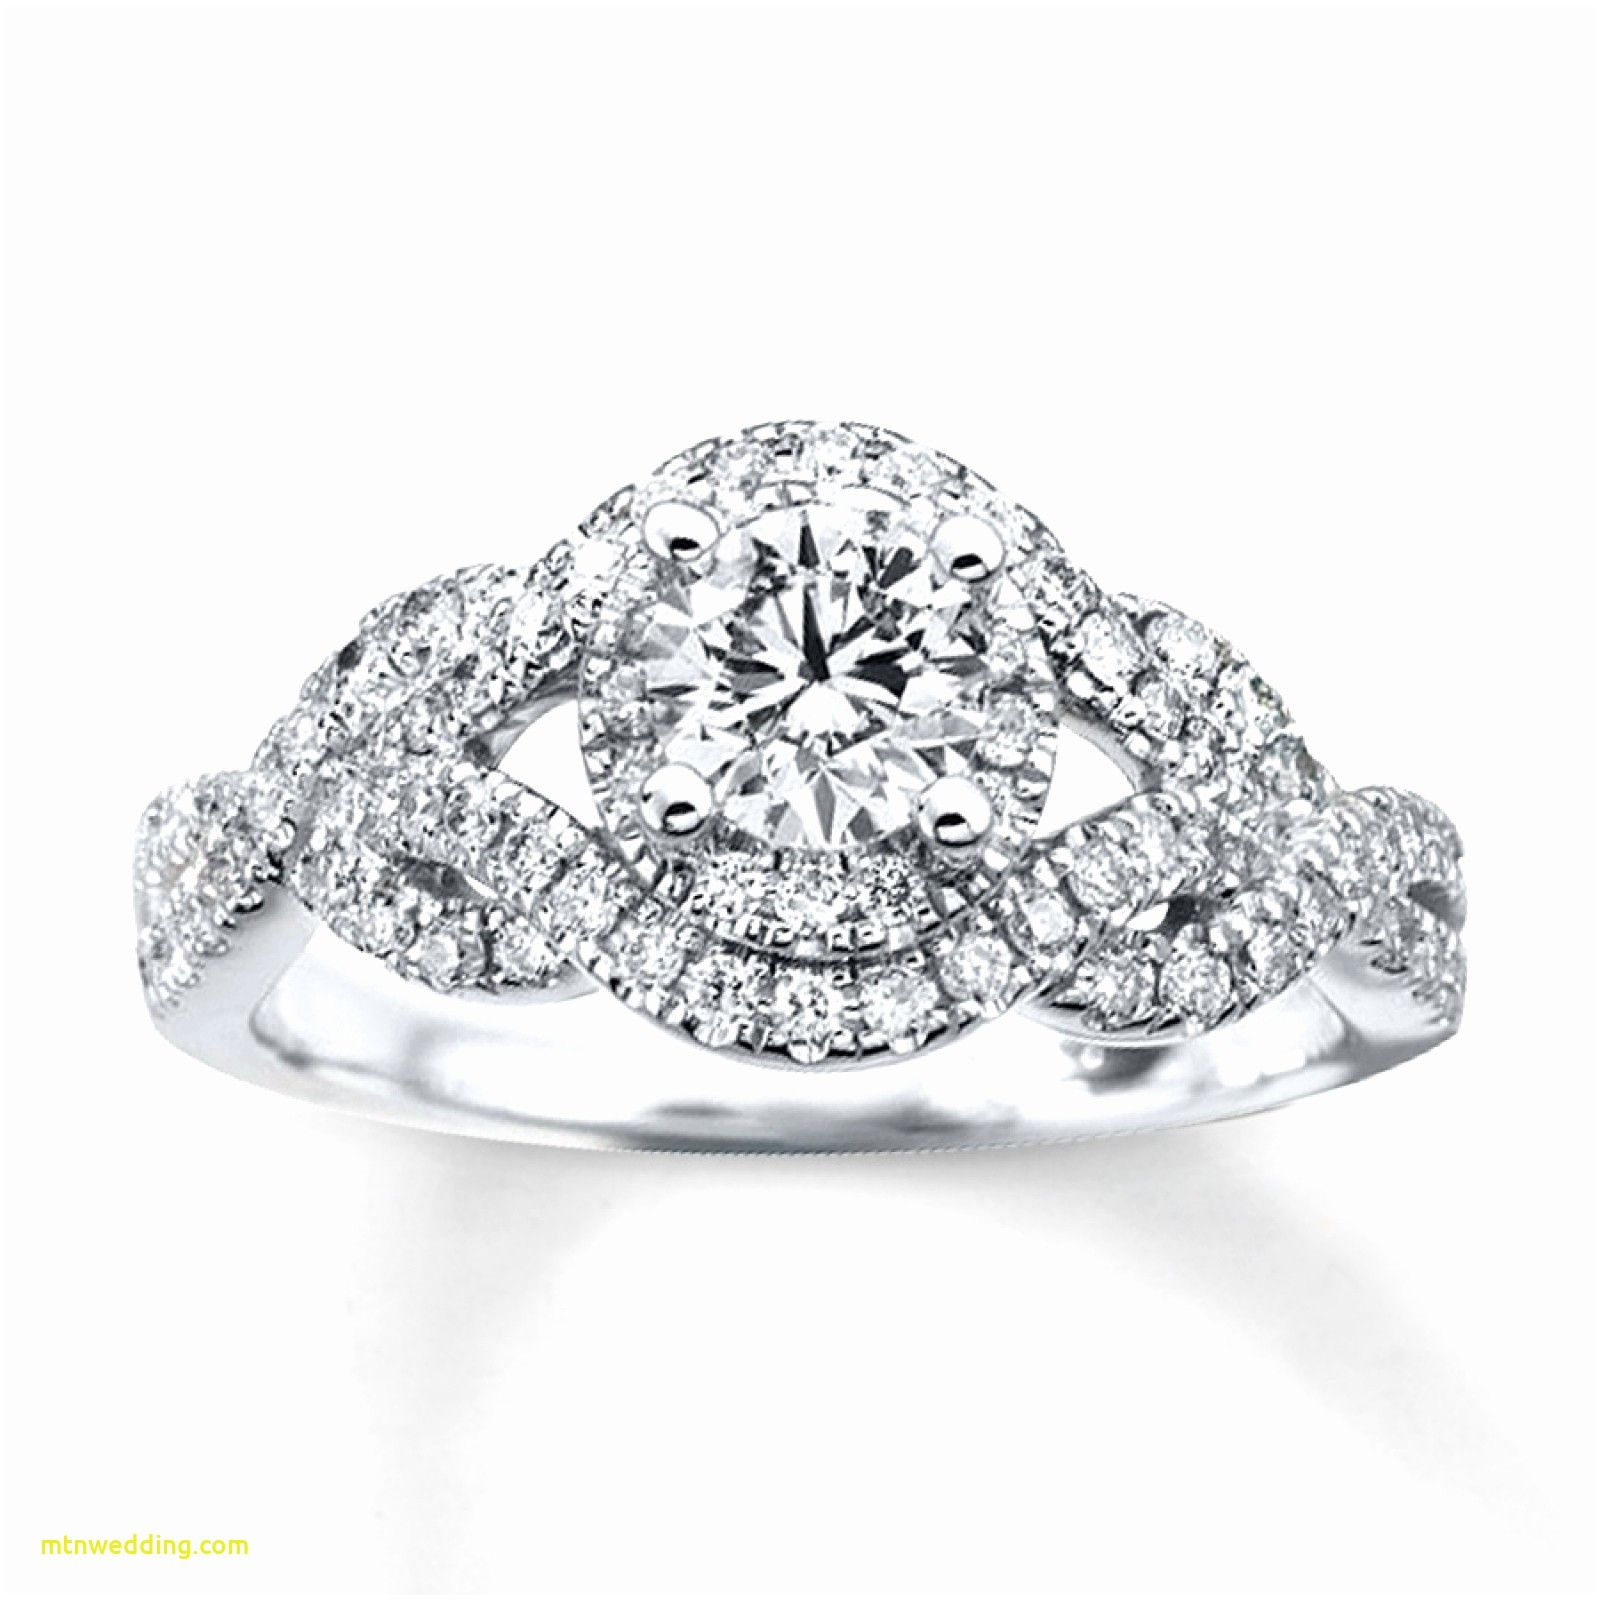 Beautiful Kay Jewelers Engagement Rings And Wedding Bands Check More At Http Mtnwedding Com Wedding Ring Engagement Rings Kay Jewelers Engagement Rings An Opal